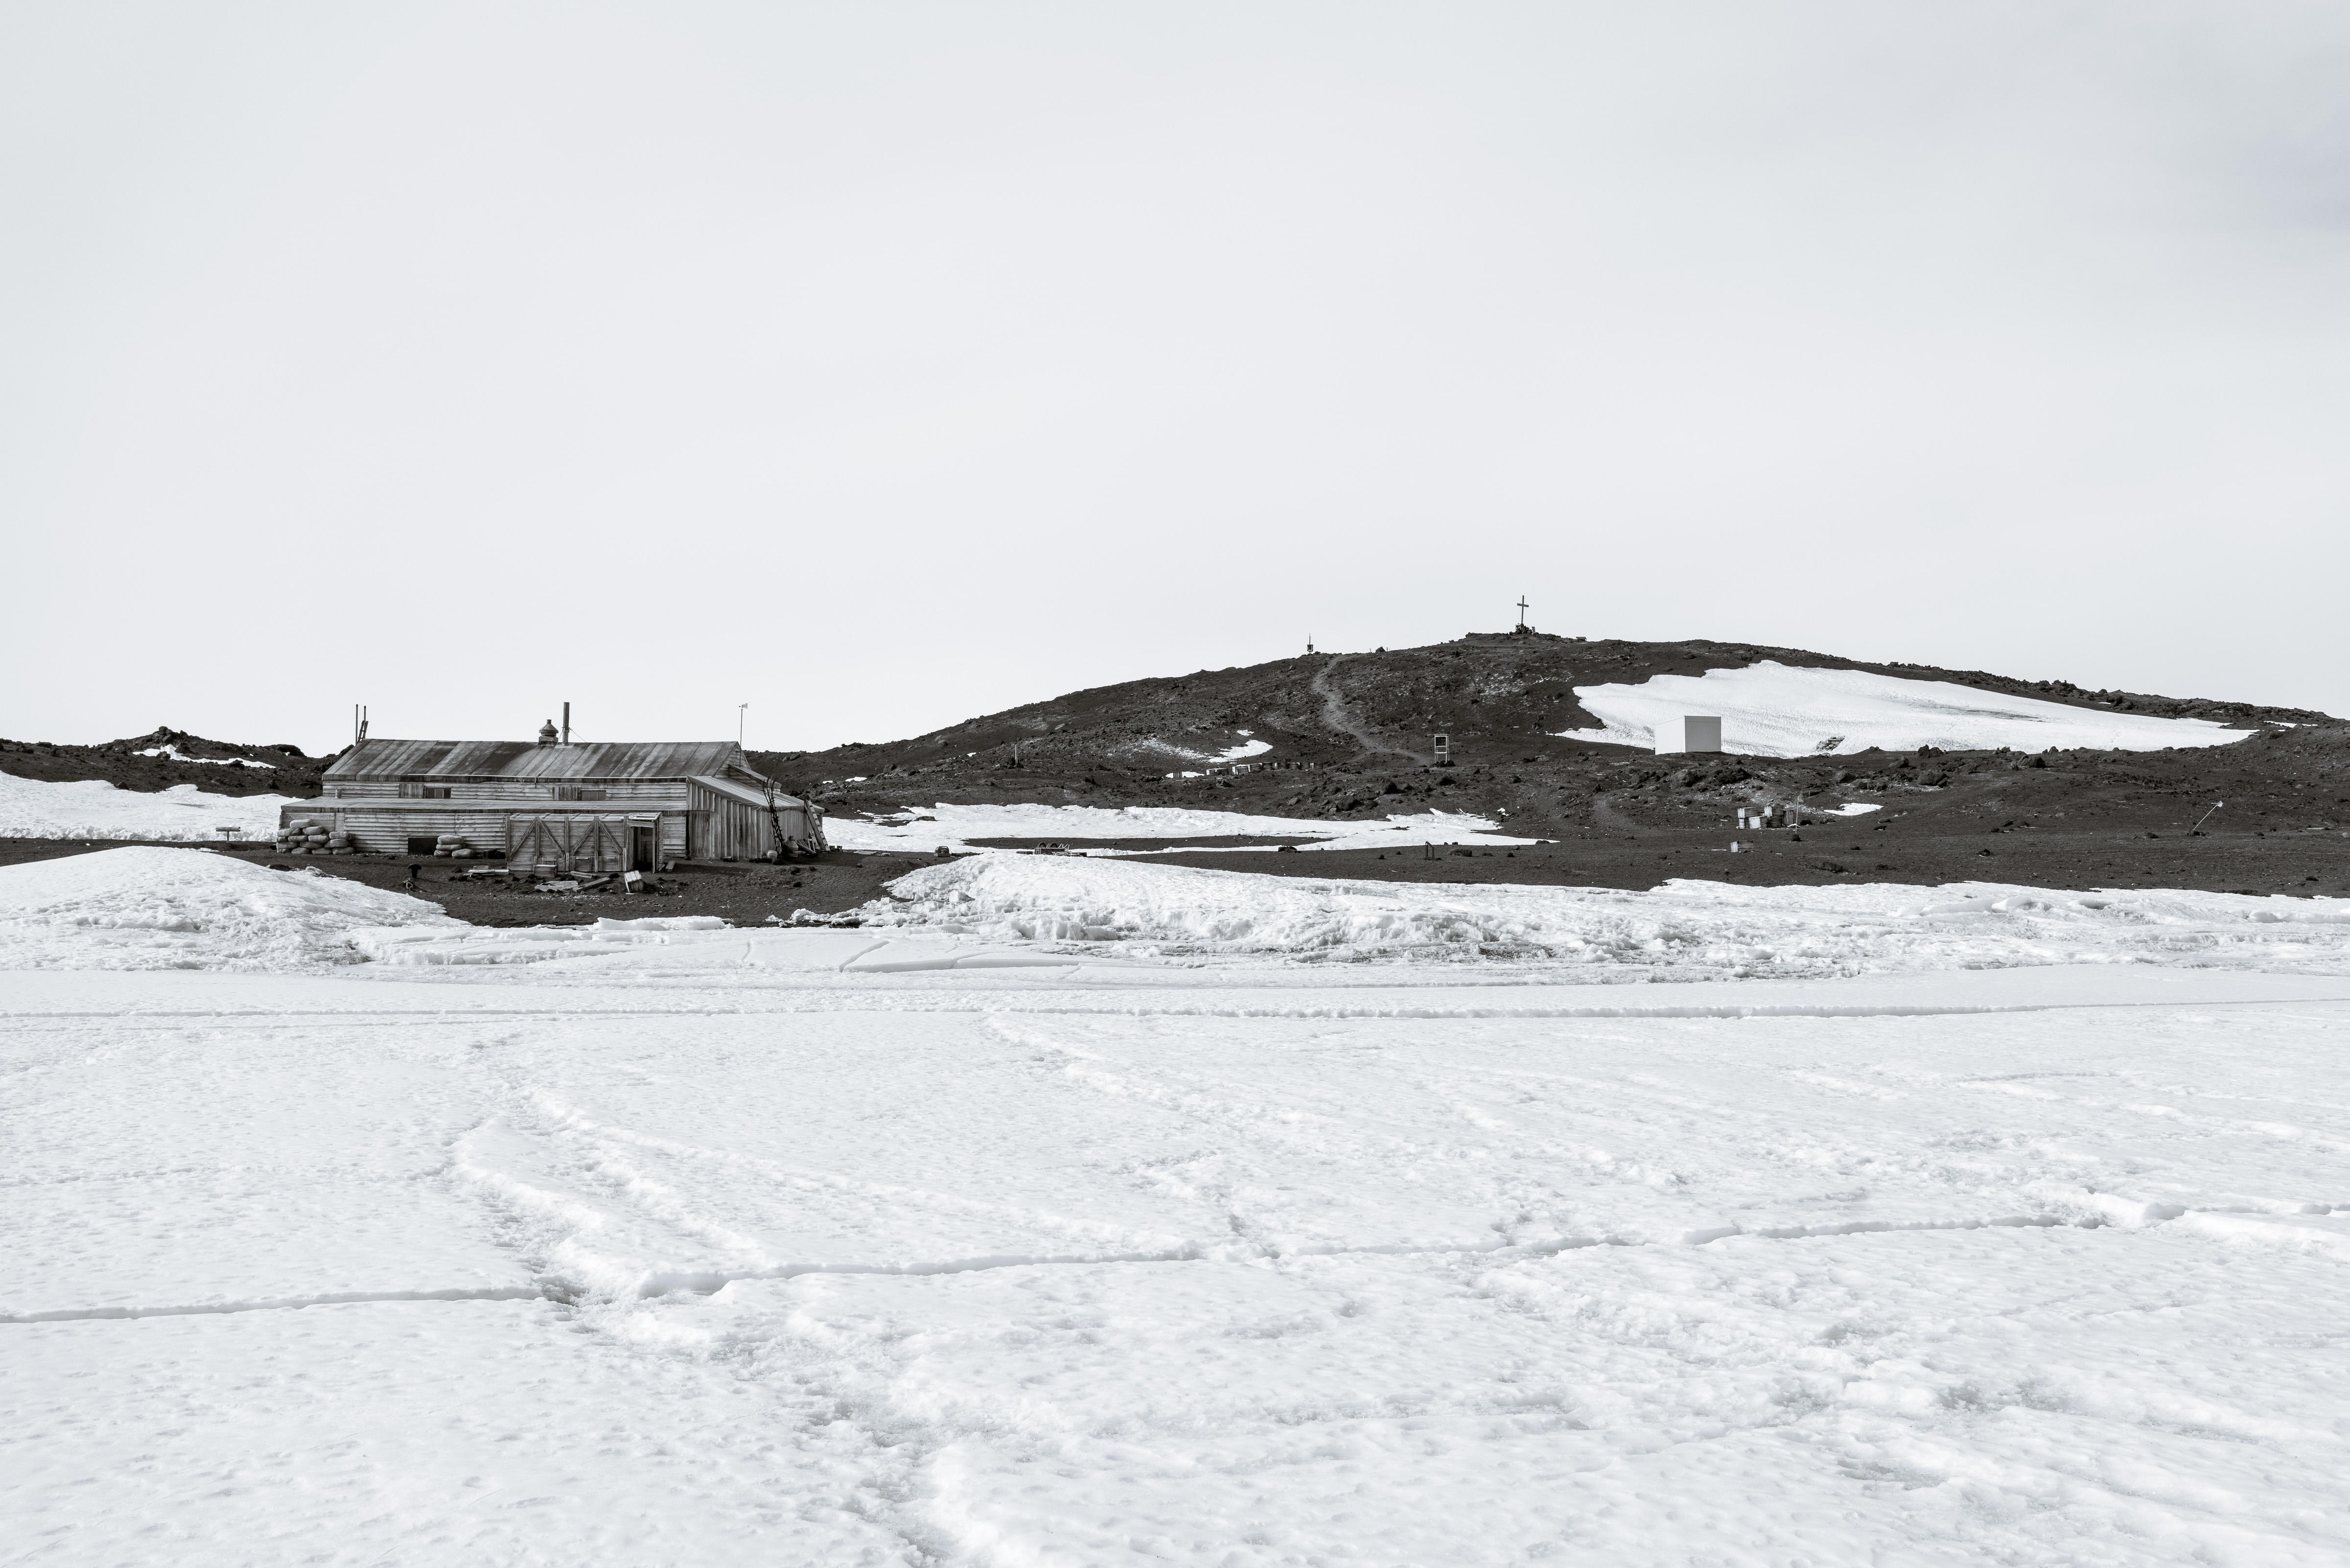 A view of the hut from the sea ice just offshore at Home Beach.